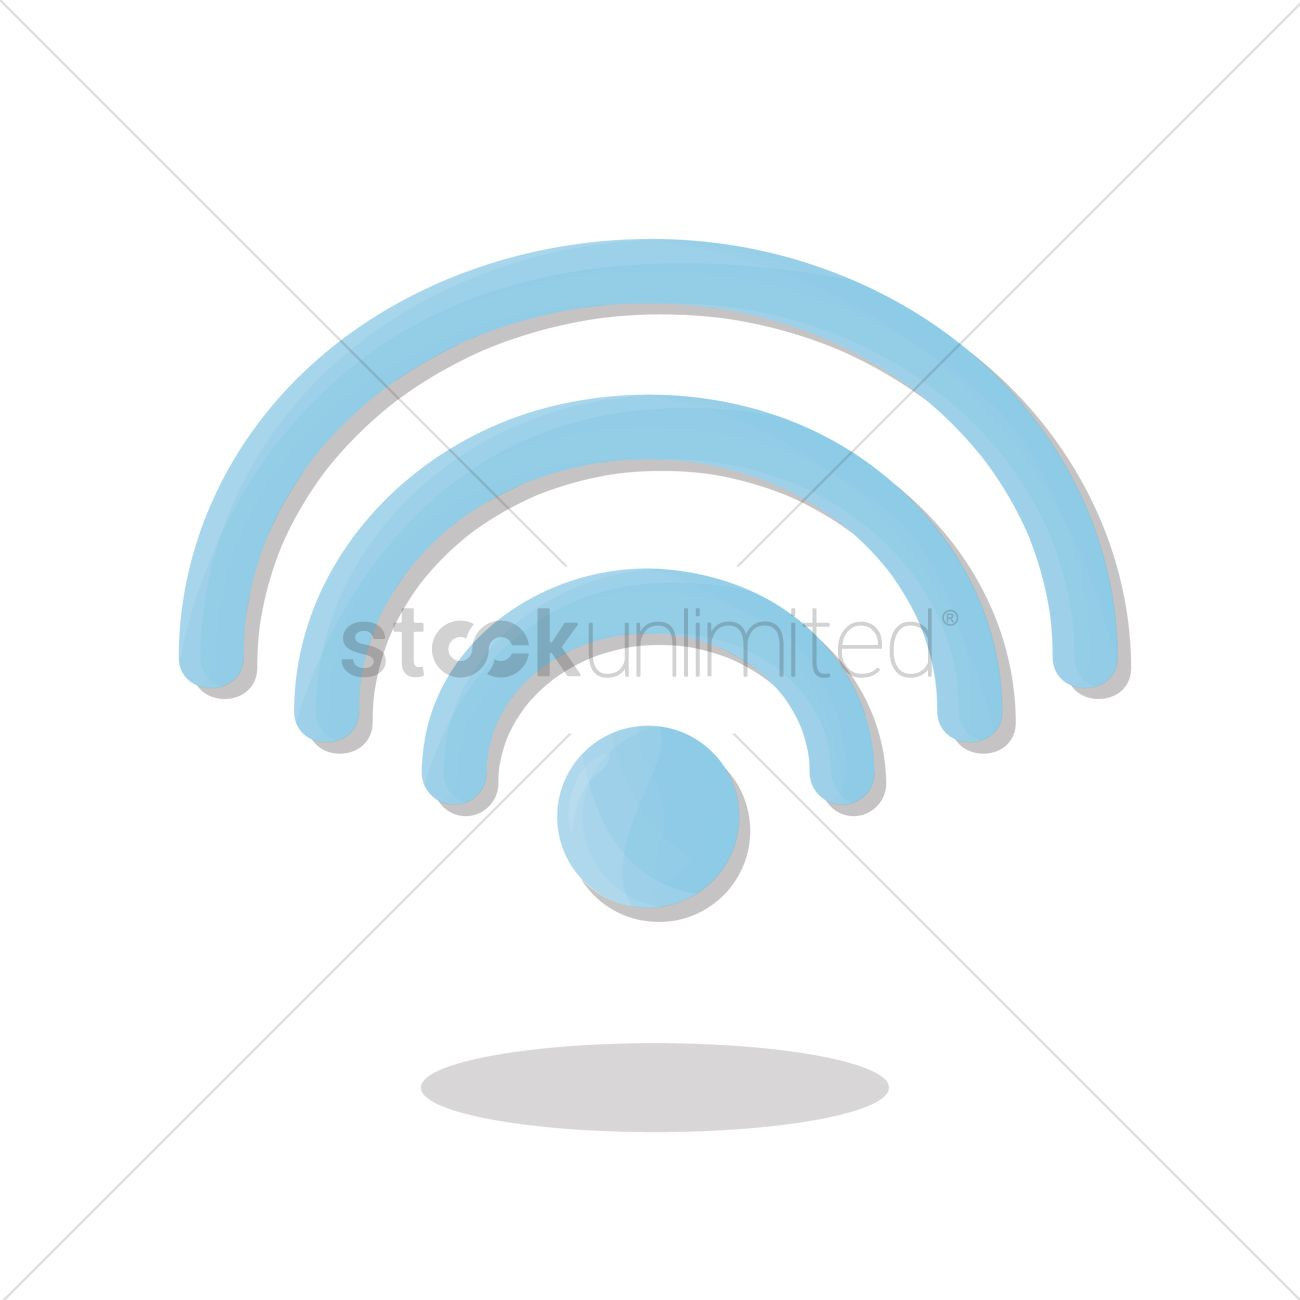 Wireless Network Symbol Vector Image 1252409 Stockunlimited